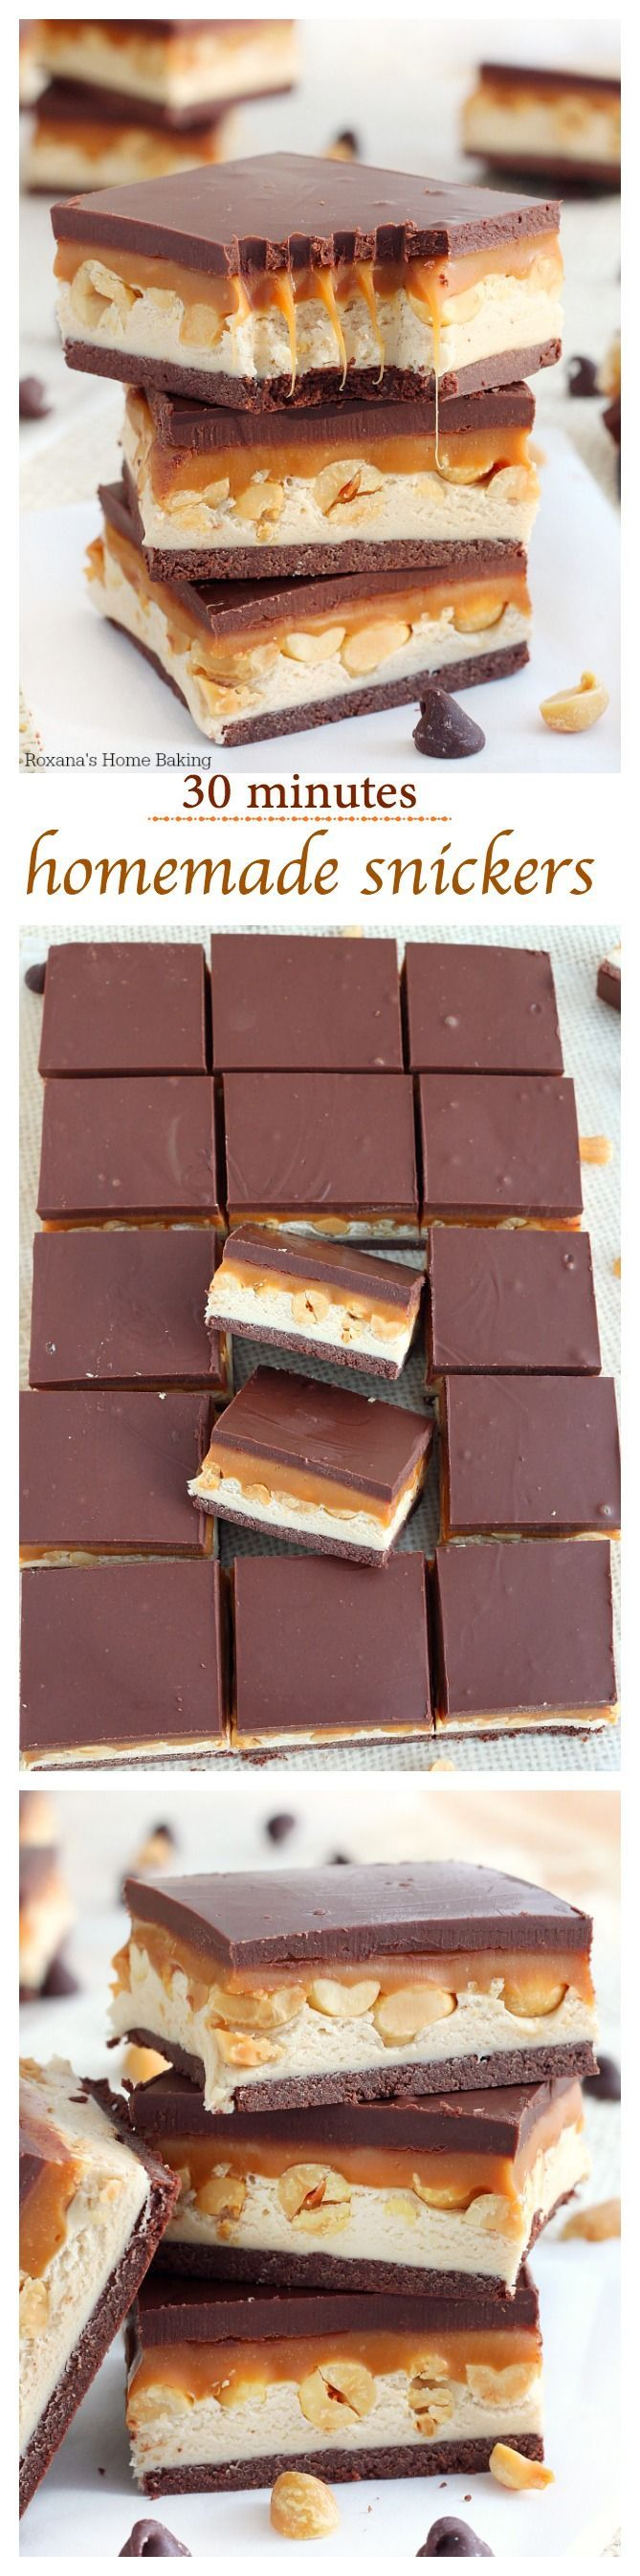 Nougat, peanuts and caramel sandwiched between two chocolate layers, these homemade snickers bars come together in 30 minutes tops!